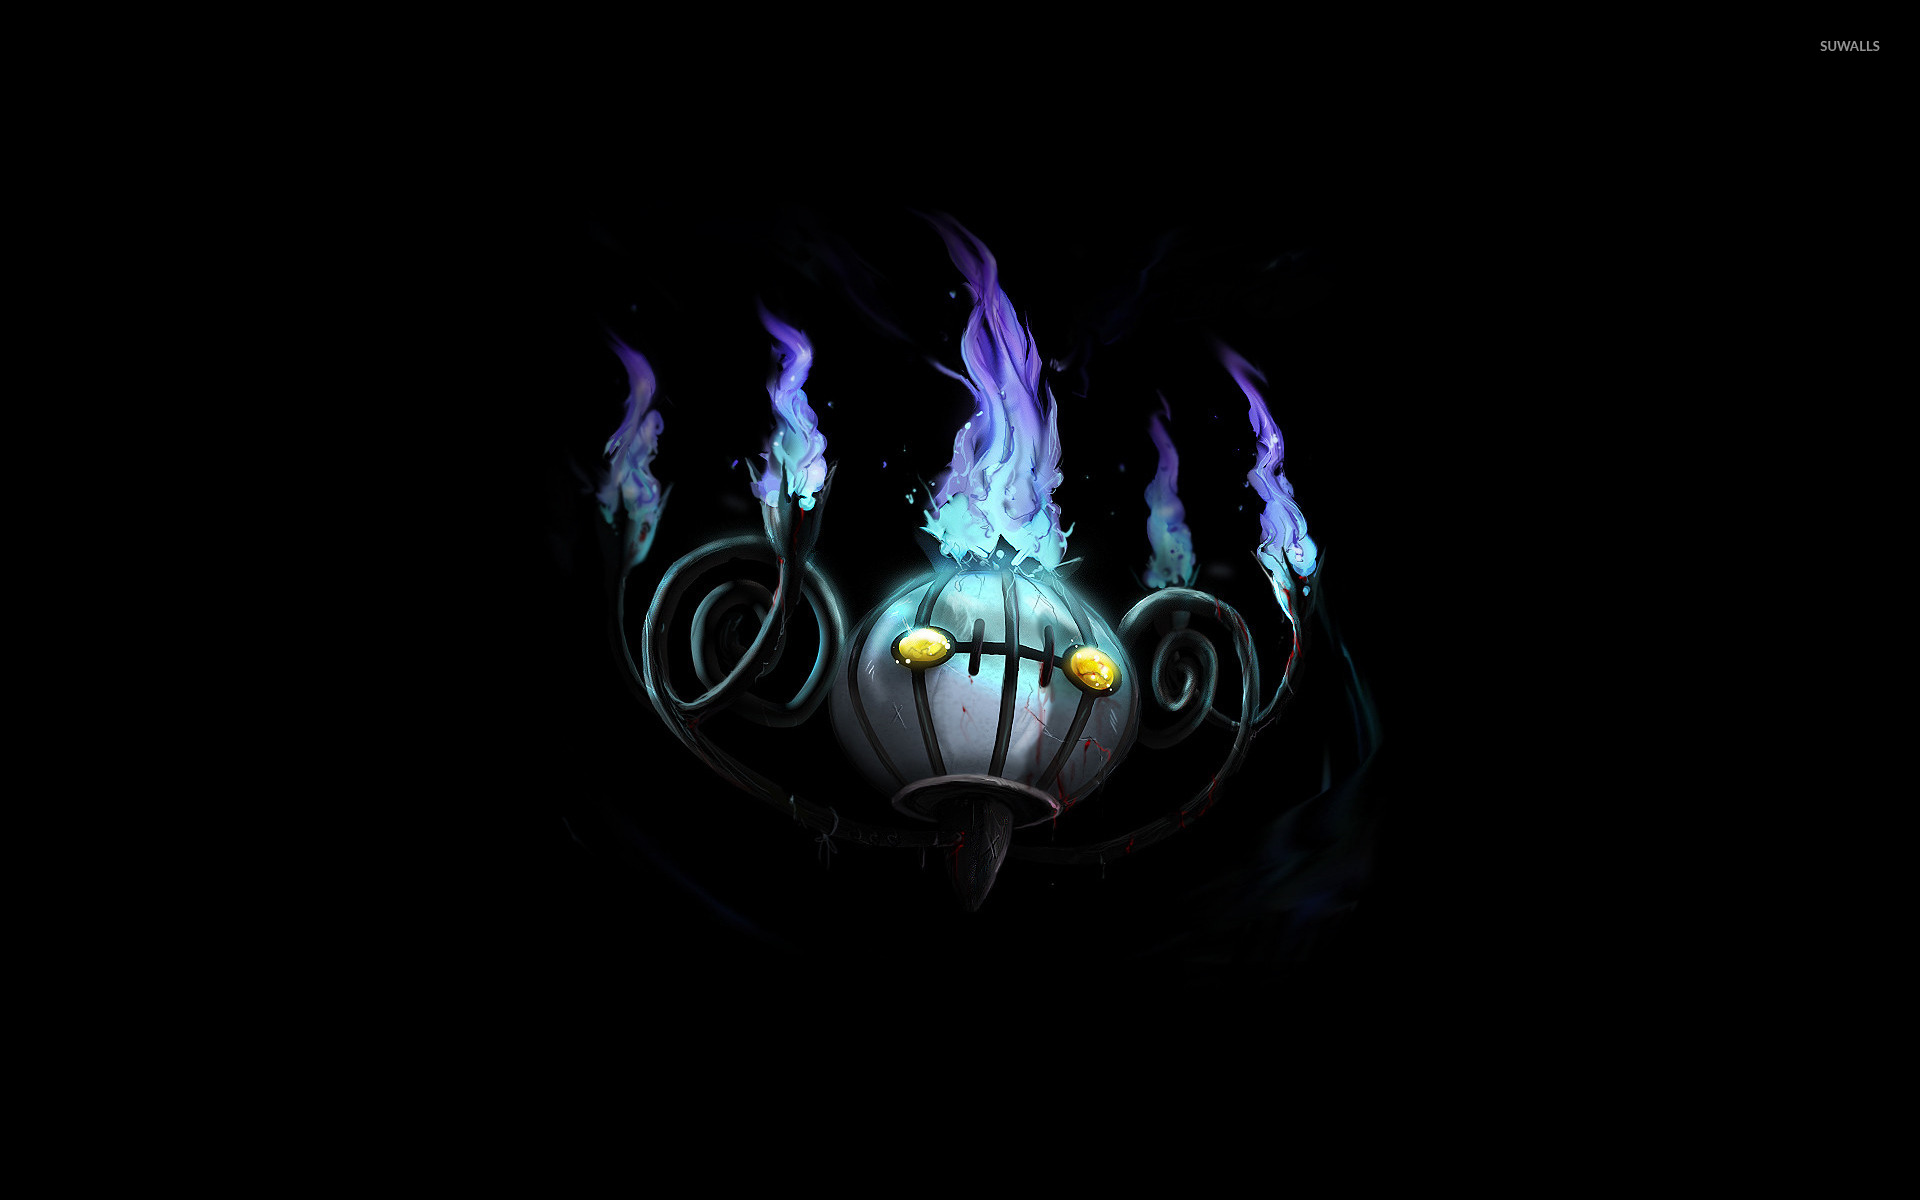 Chandelure   Pokemon wallpaper 1366x768 1366x768